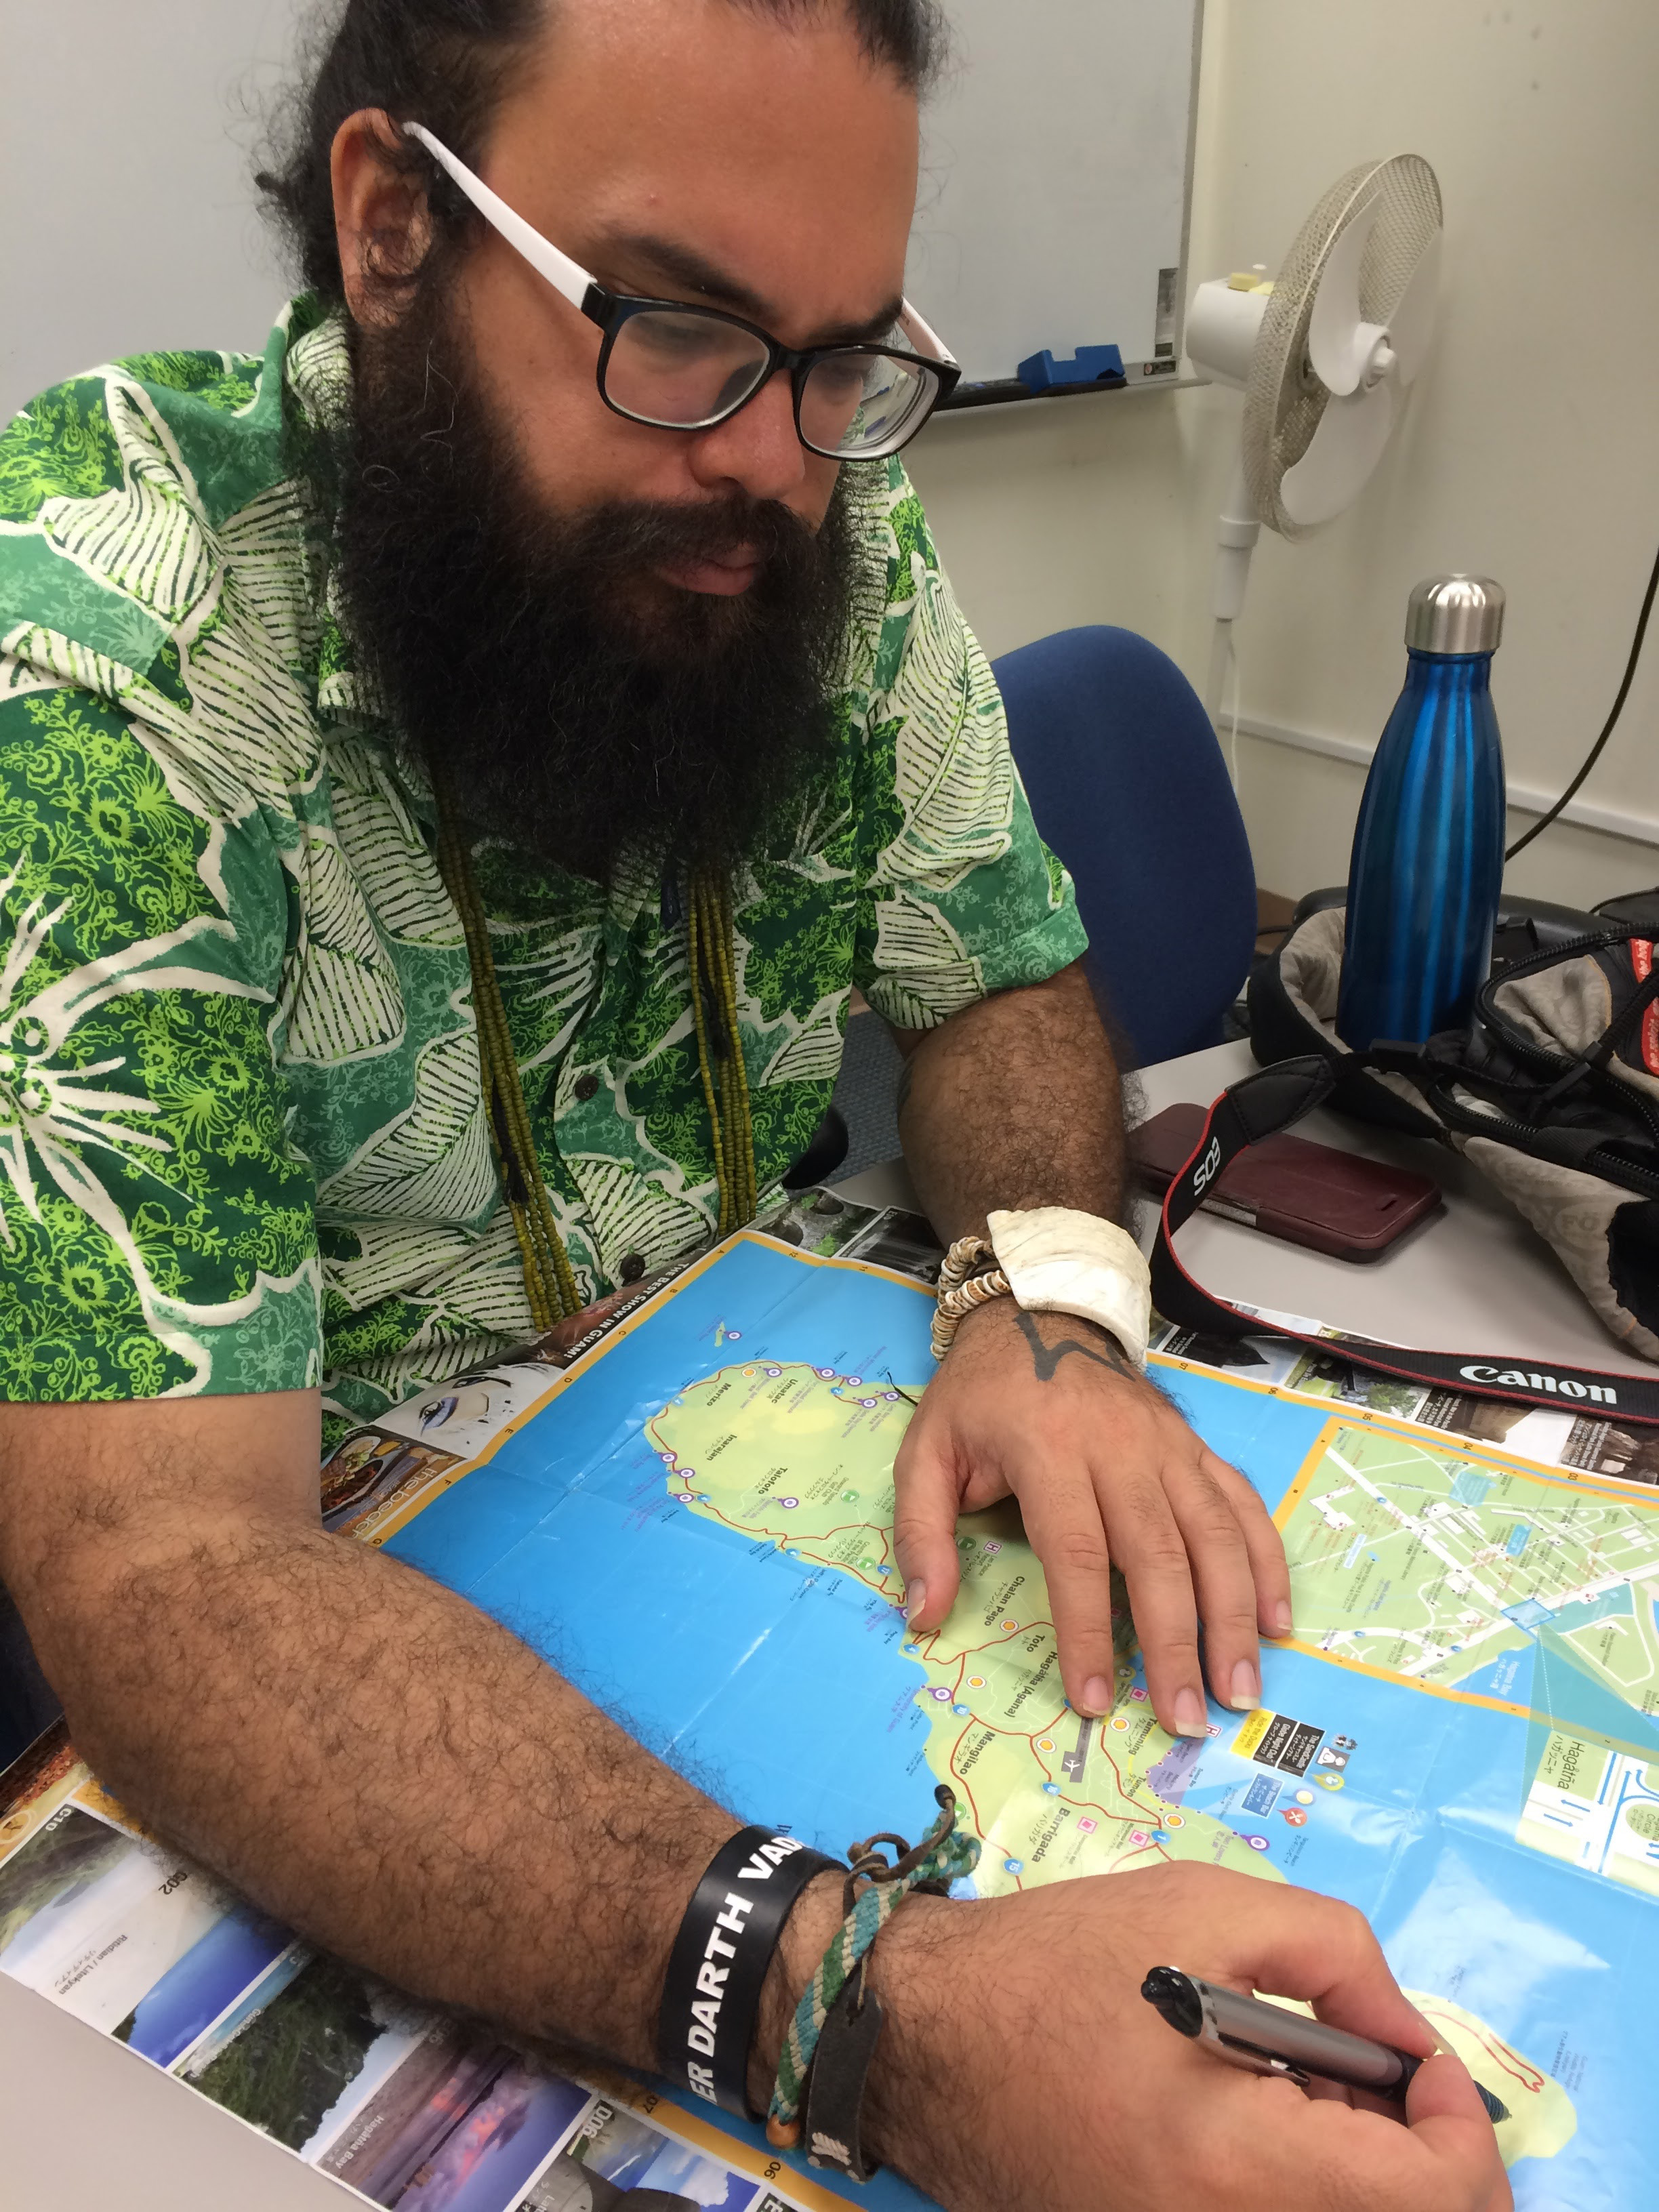 Michael Lujan Bevacqua Uses A Map To Show Where Us Bases On Guam Are Located The Military Occupies Nearly One Third Of The Island Jon Letman